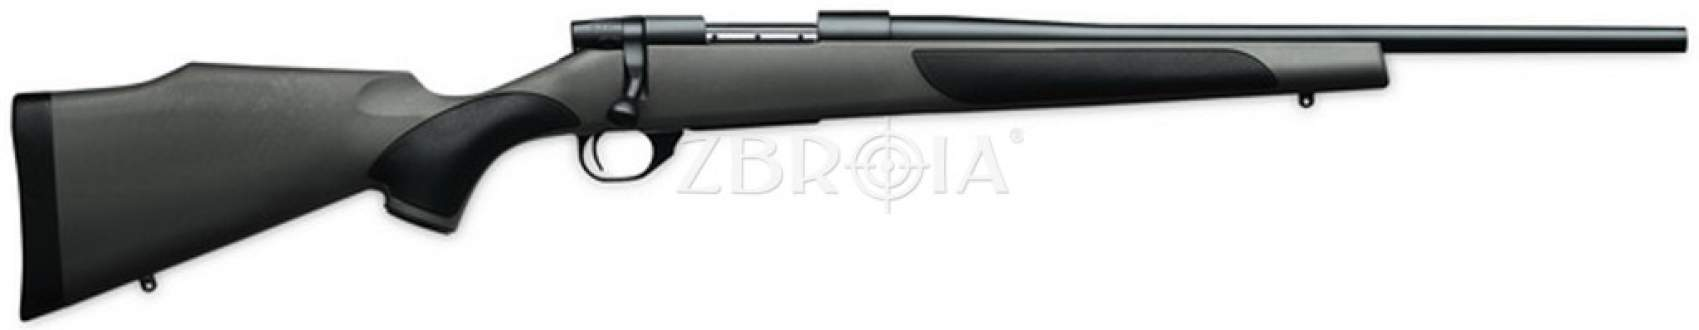 Карабин Weatherby Vanguard 2 Carbine кал. 308 Win